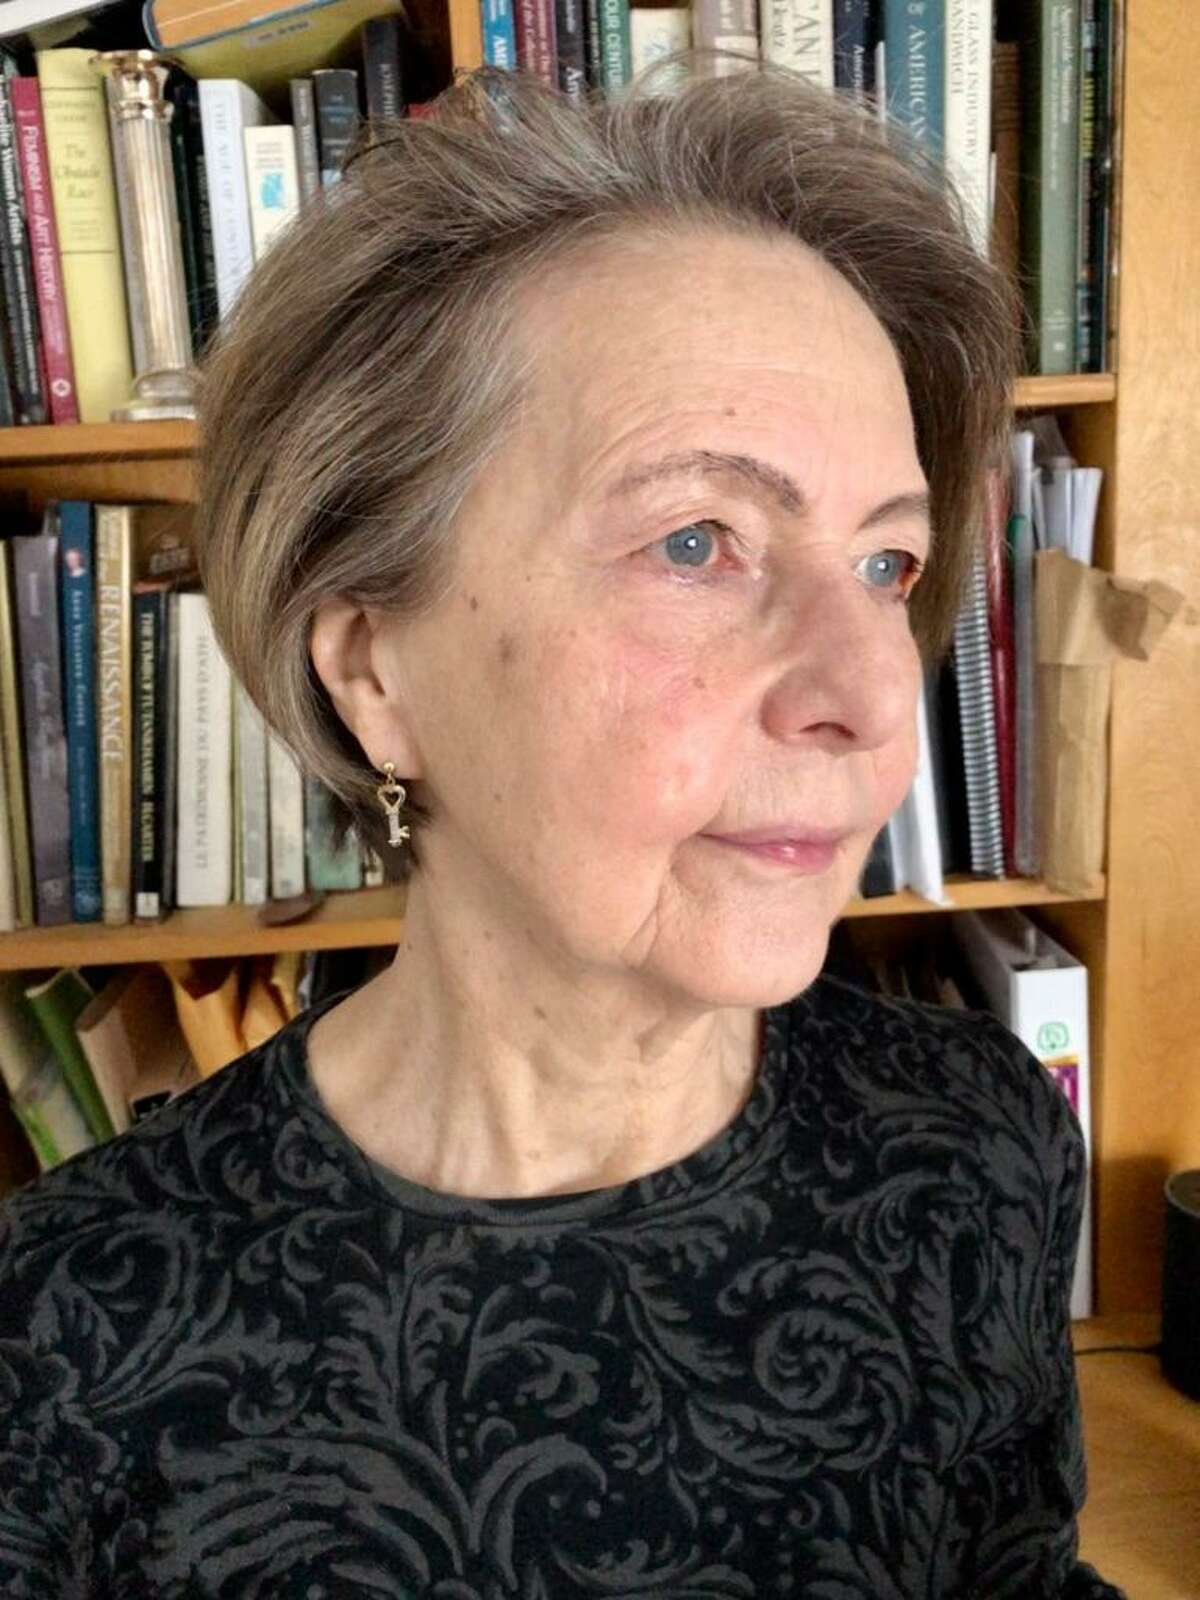 The Women's Forum of Litchfield welcomes Véronique Dulack to speak about female artists of the Renaissance and Baroque eras at the Litchfield Community Center, 421 Bantam Road, Litchfield, at 2:30 p.m. April 4. Dulack was born and raised in Belgium where she obtained a Masters' Degree in Art History and Archaeology at the University of Louvain. She has been working in the field of art history since 1976, starting as researcher and later as an independent curator until moving to the United States in 1986. In 1987 she became a Research Associate in the Department of European Paintings at the Metropolitan Museum of Art. For 17 years, she taught Art History and Art Appreciation at the Waterbury Campus of the University of Connecticut, and specifically a course on the topic of Feminism and the Arts. The event is open to non-Forum members for $10, which includes a High Tea reception. For more information call 860-567-3966 or go to womensforumoflitchfield.org